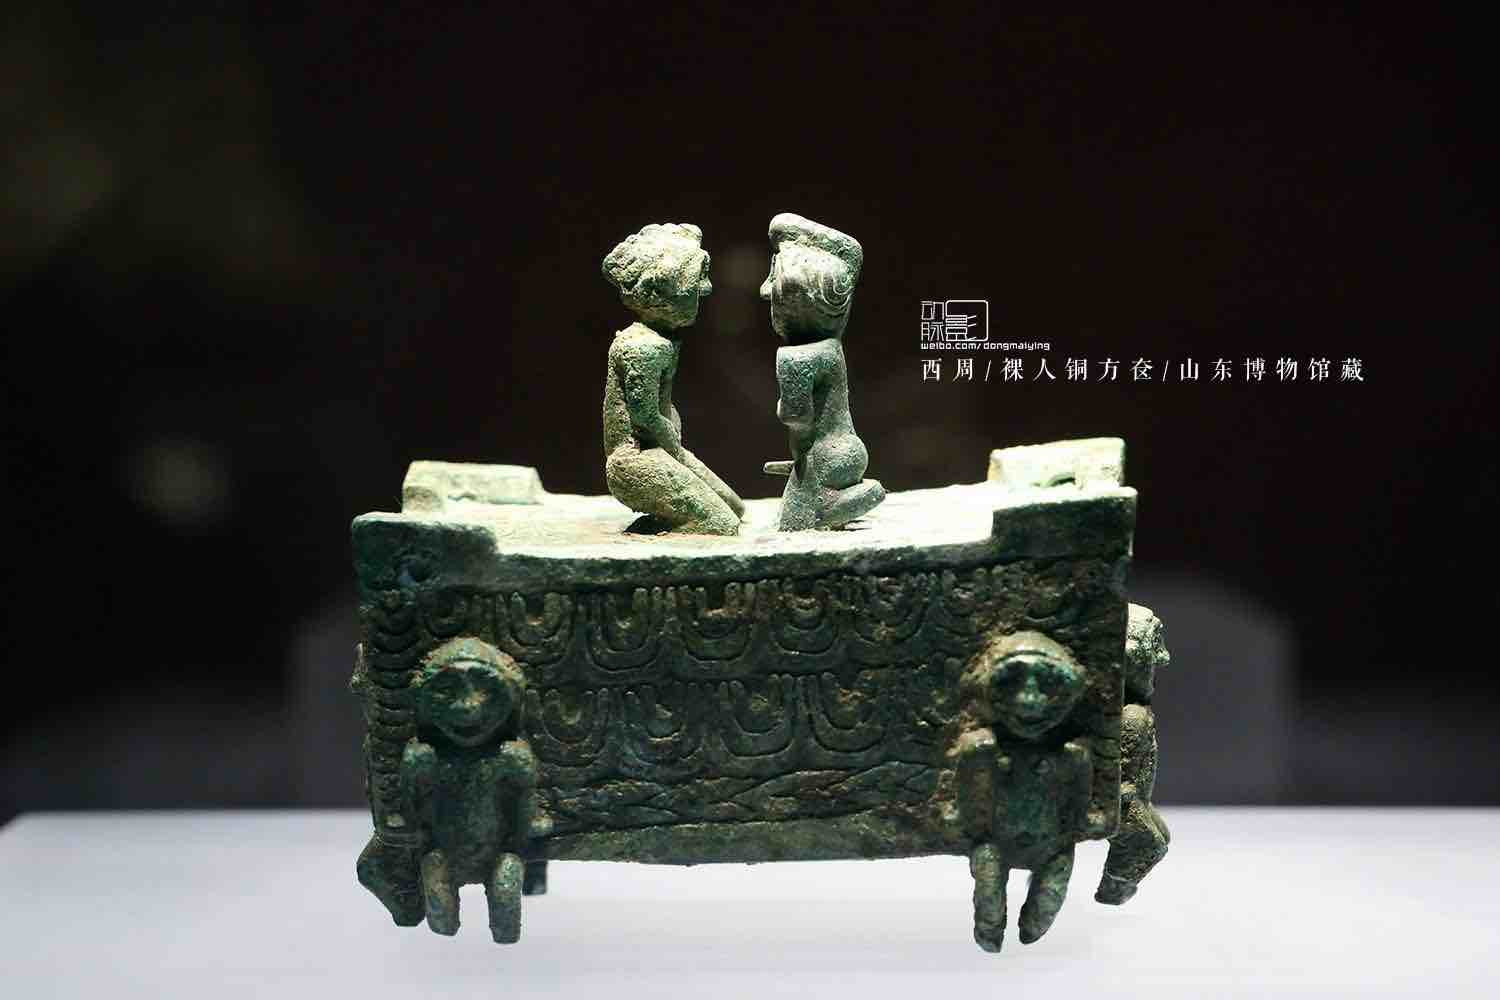 Bronze Case (Lian) with Naked Figurines — Shandong Museum